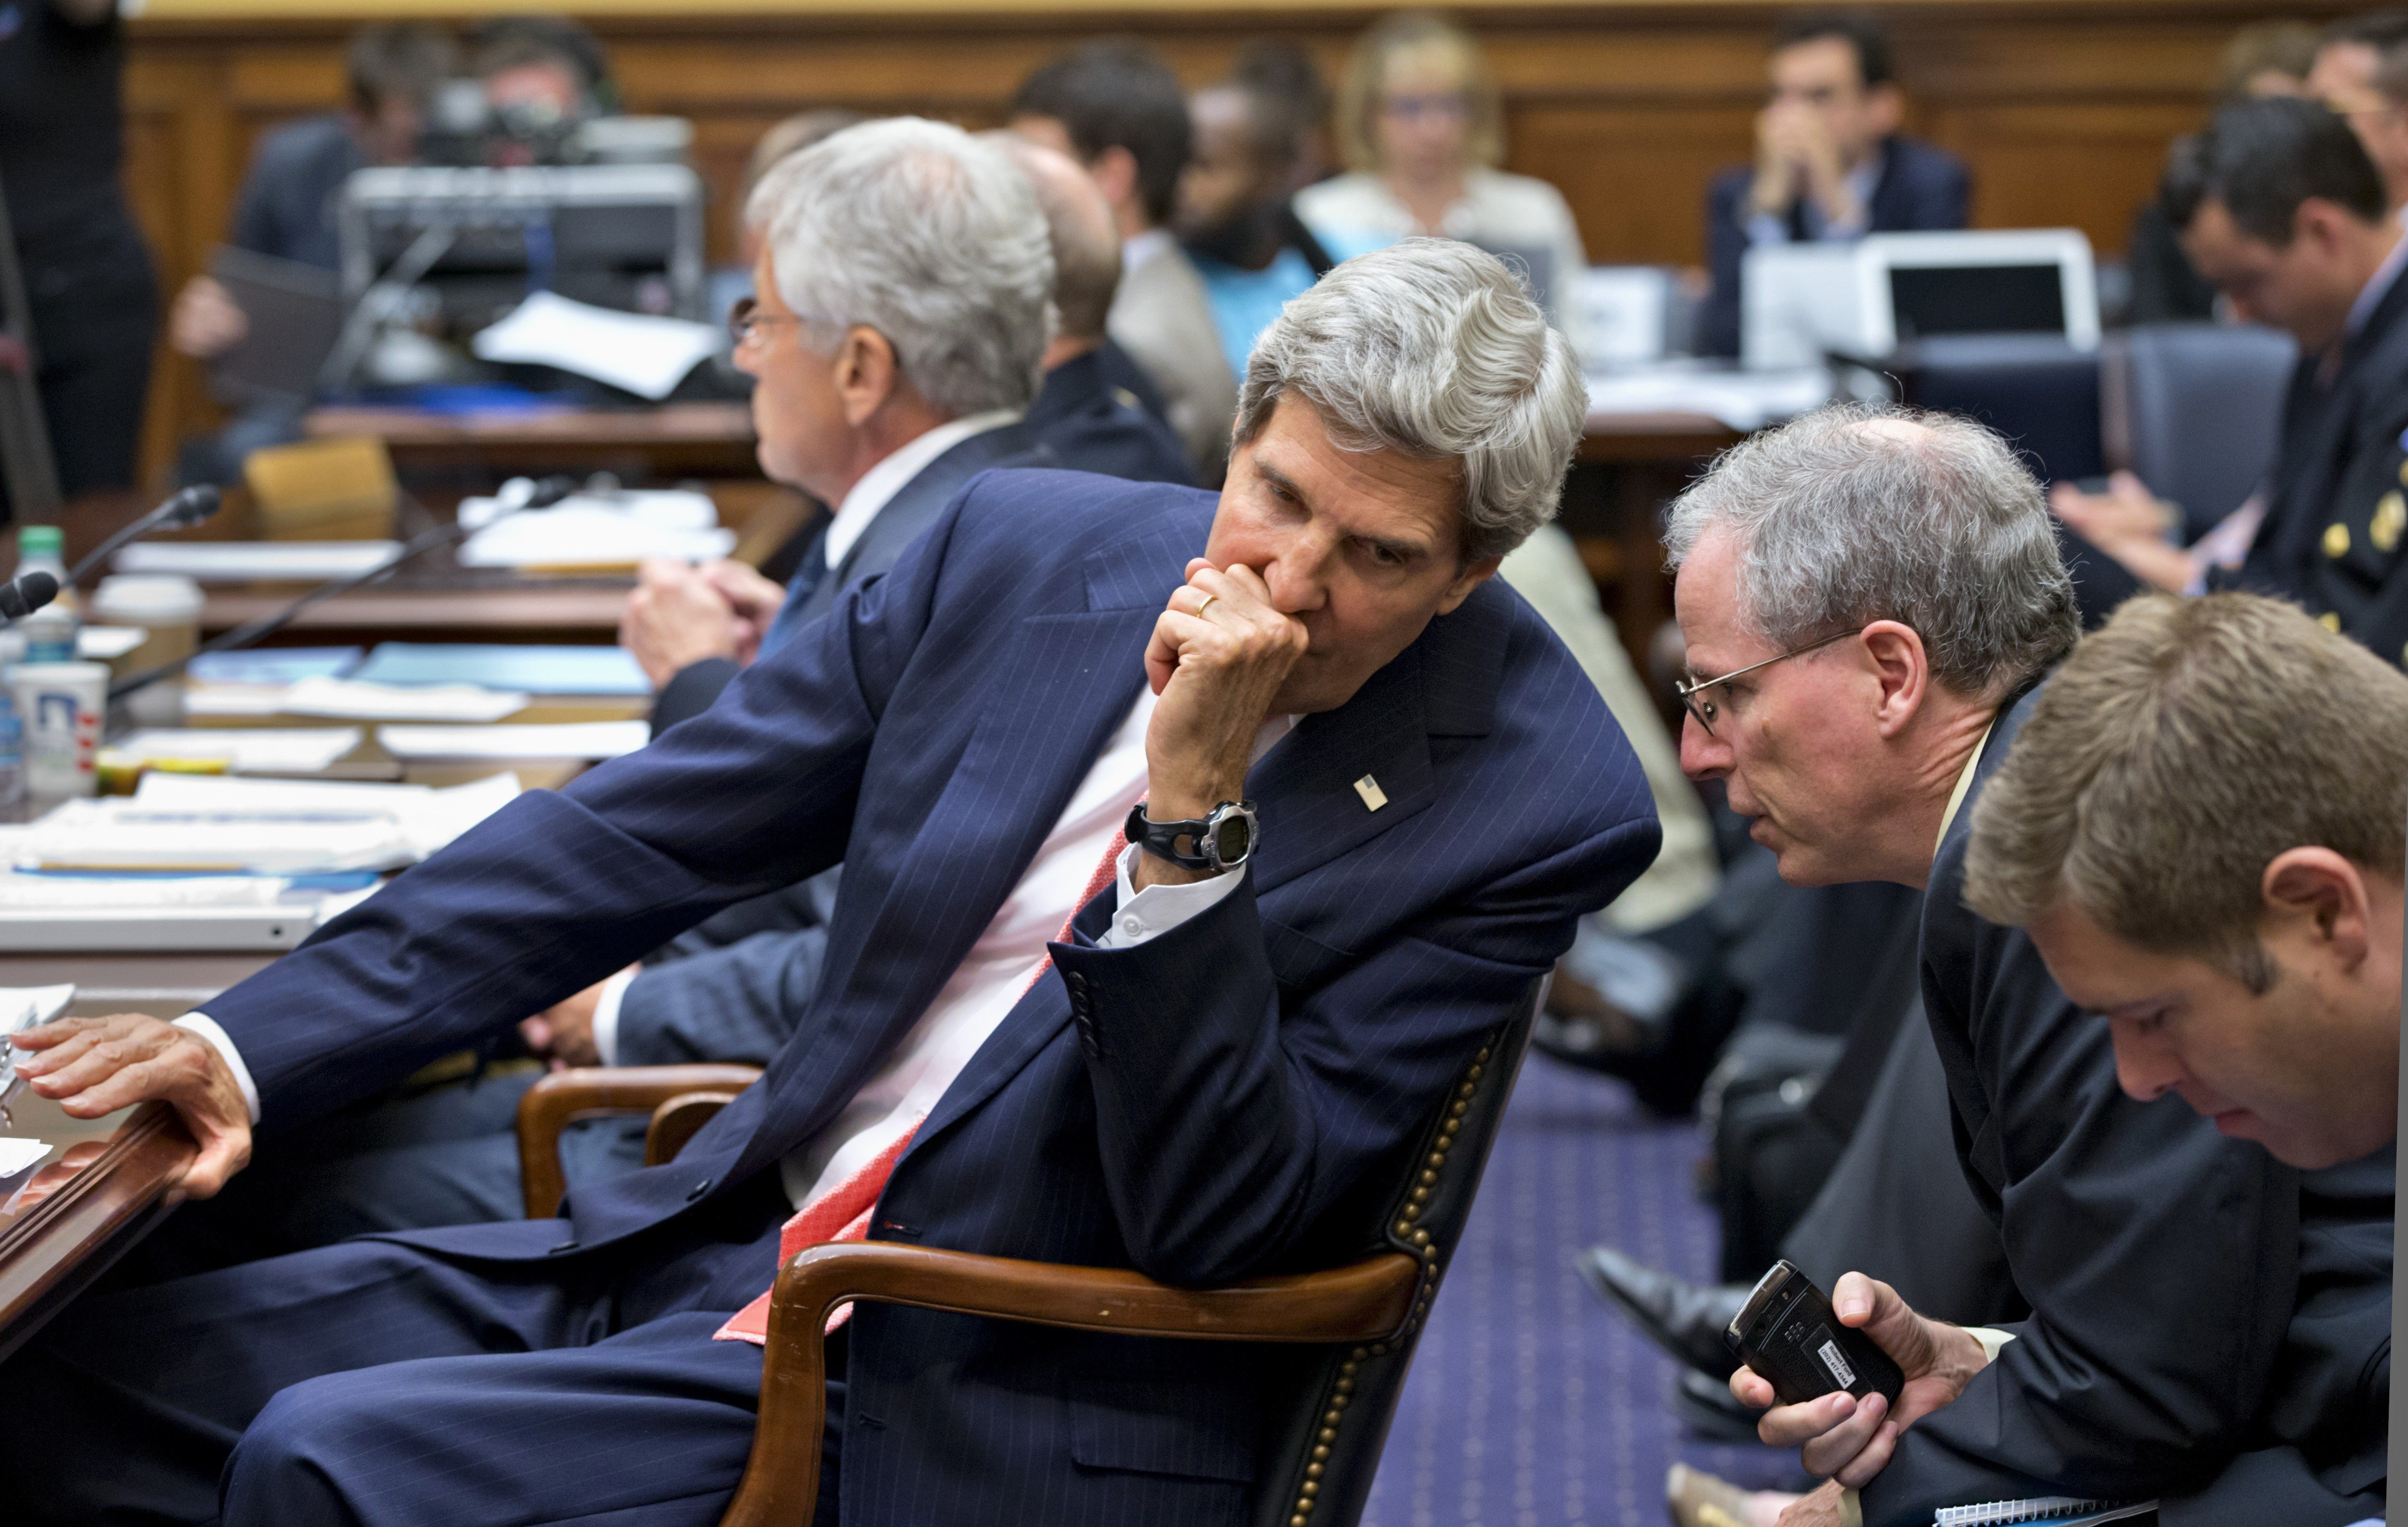 AP Photo/J. Scott ApplewhiteSecretary of State John Kerry confers with U.S. Ambassador to Syria Robert Ford